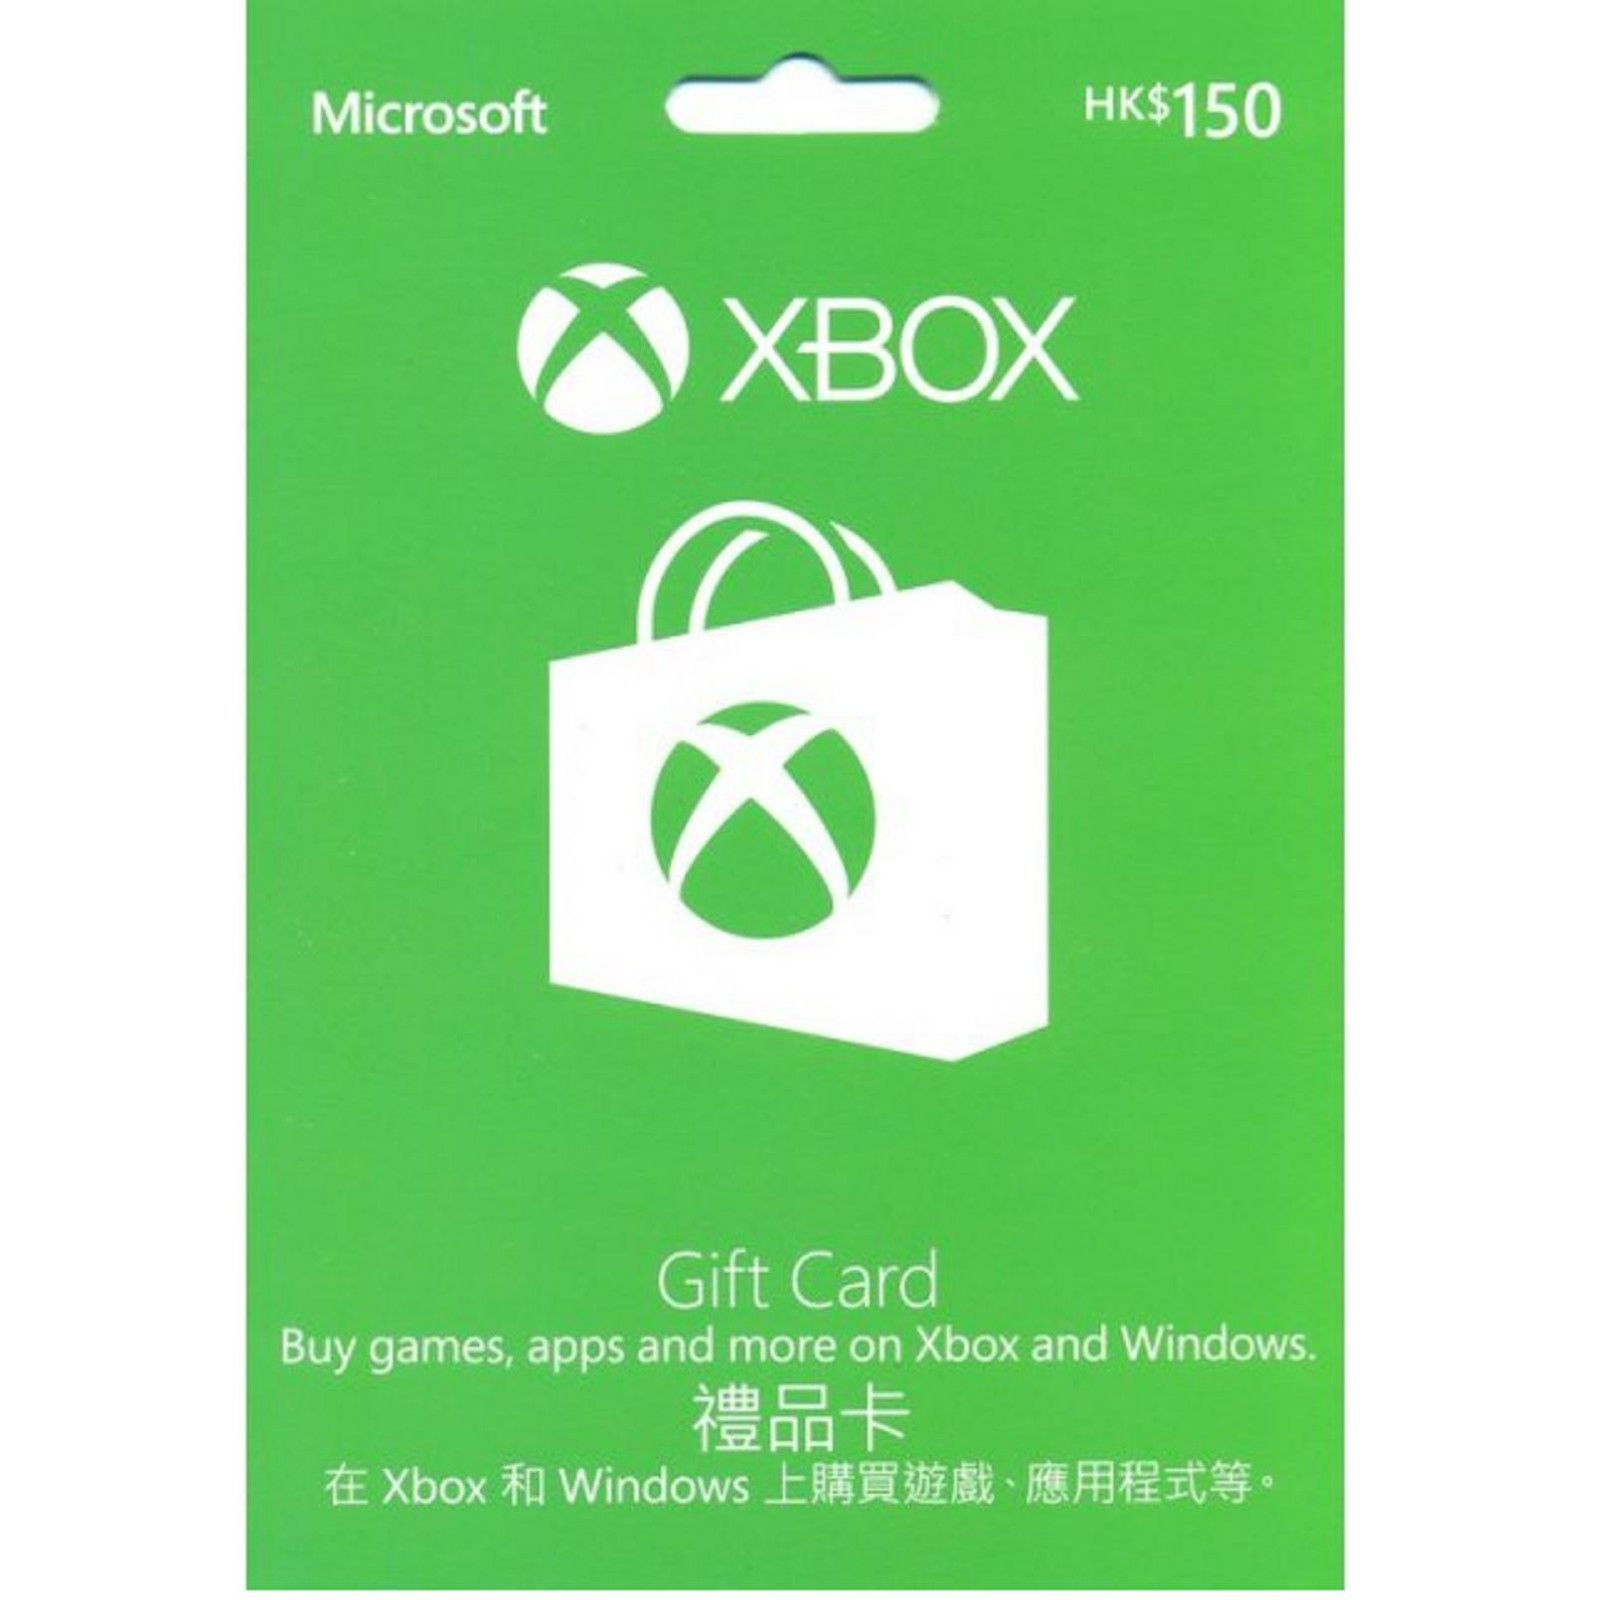 xbox gift card hkd150 for hong kong microsoft account only http